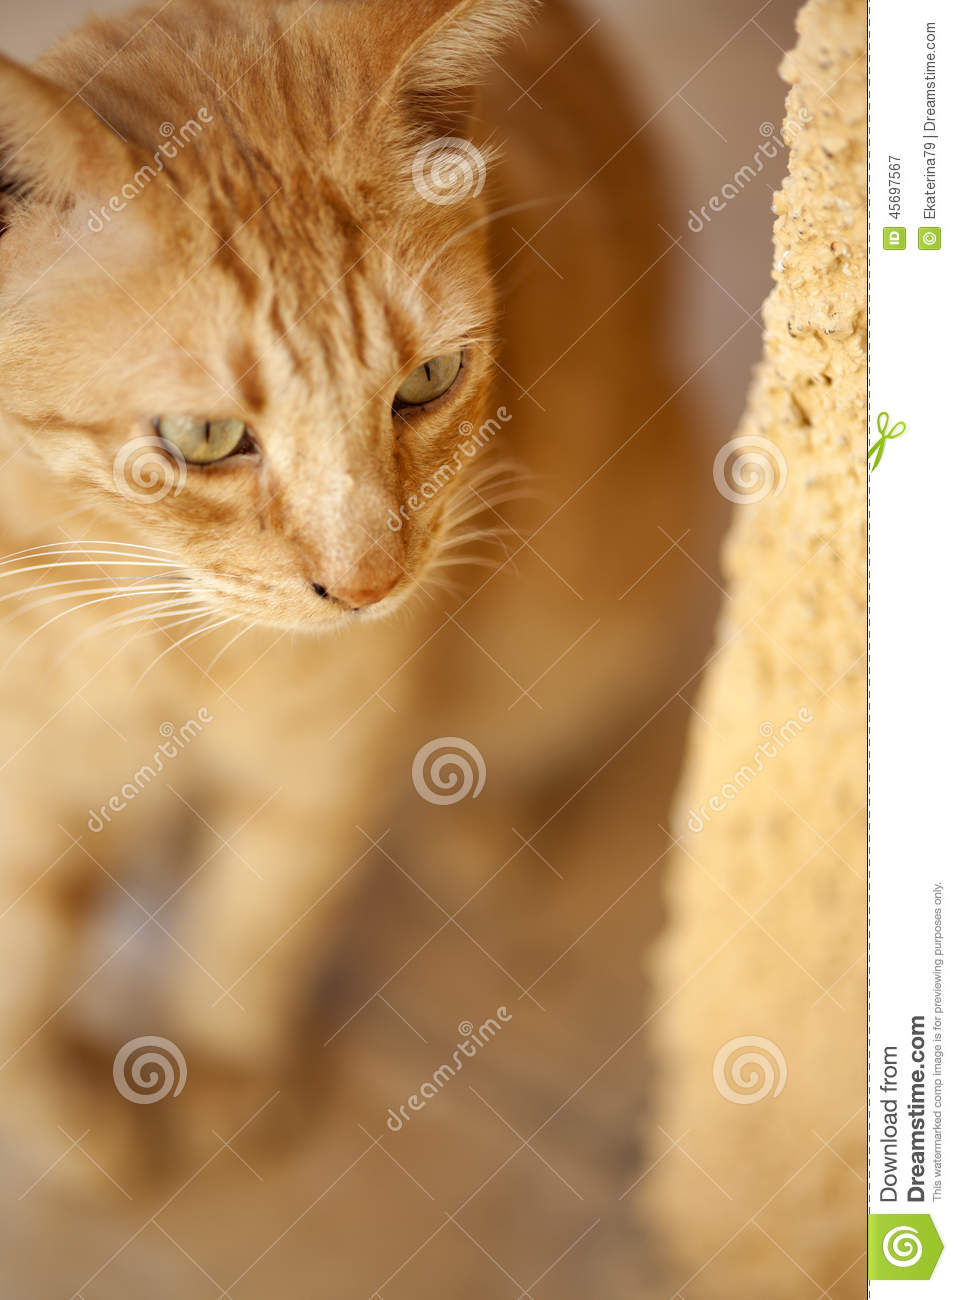 A Red Cat Peeking Around The Corner Stock Photo - Image ...